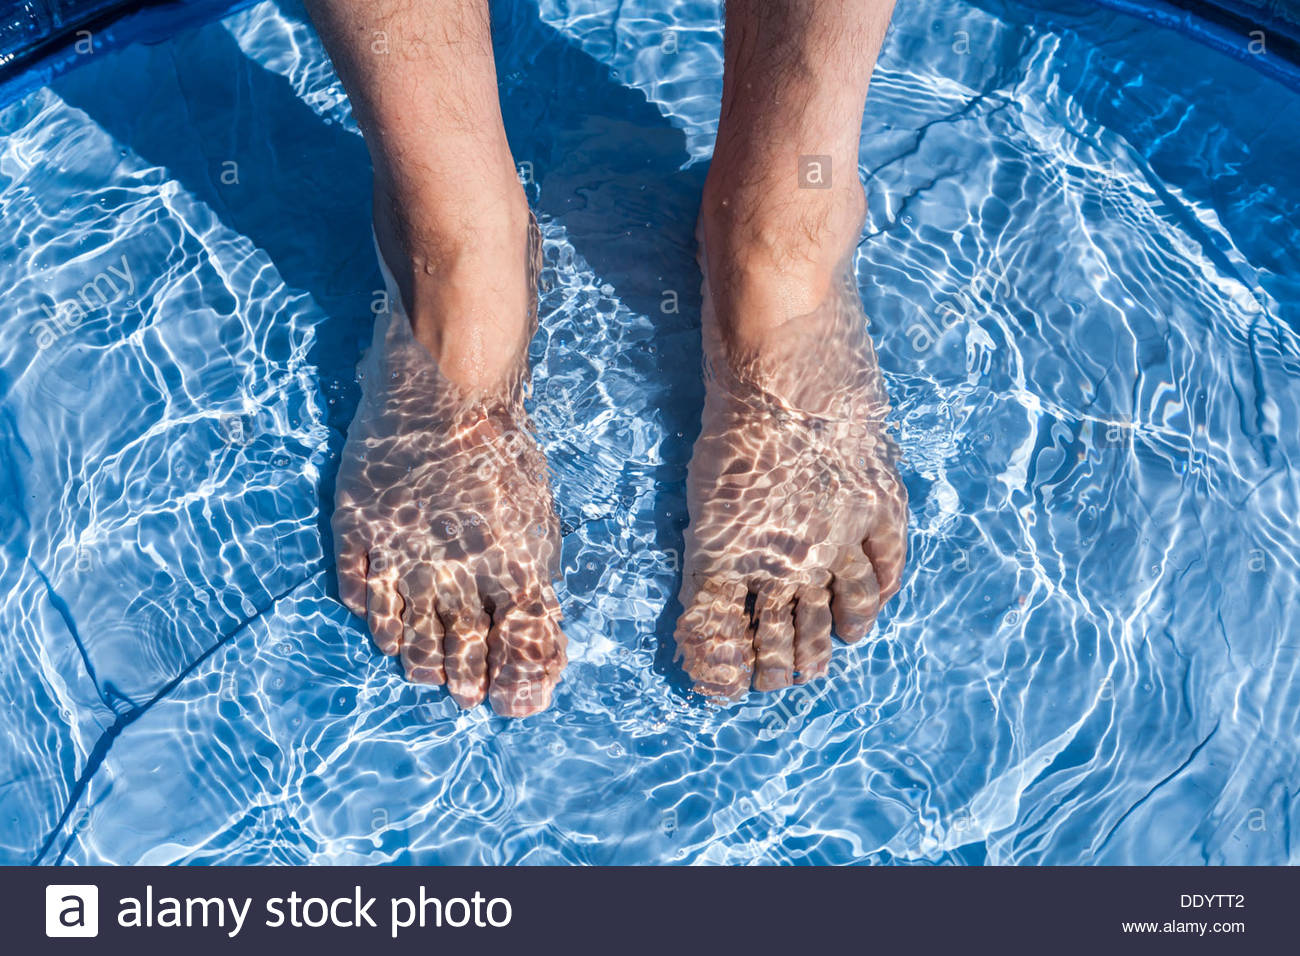 Cooling off feet in water - Stock Image